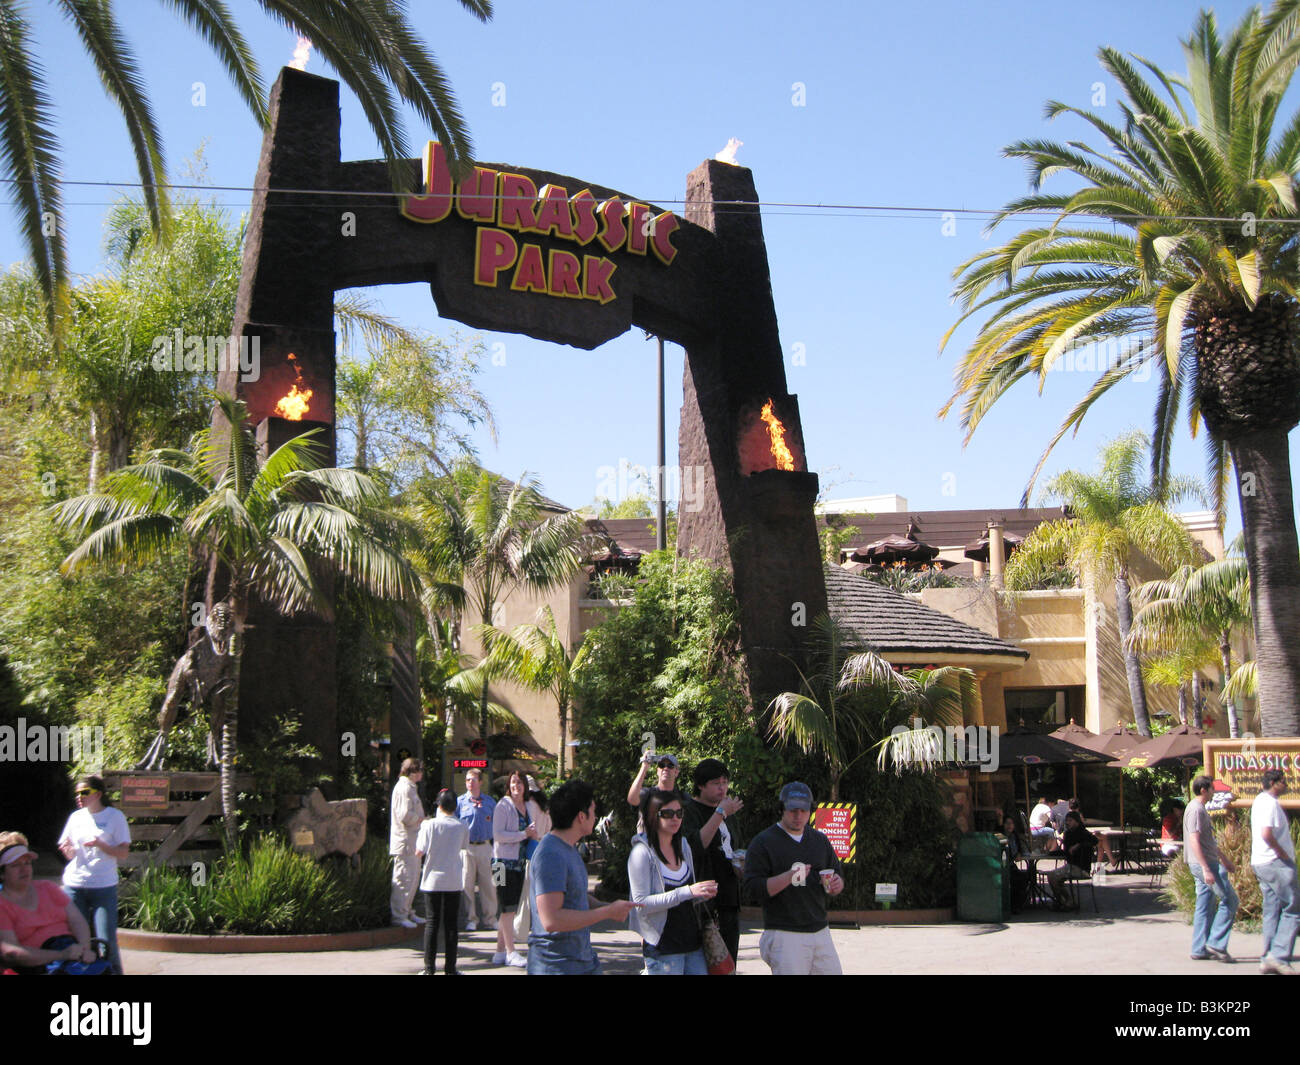 UNIVERSAL STUDIOS, Hollywood Entrance to the Jurassic Park ride - Stock Image